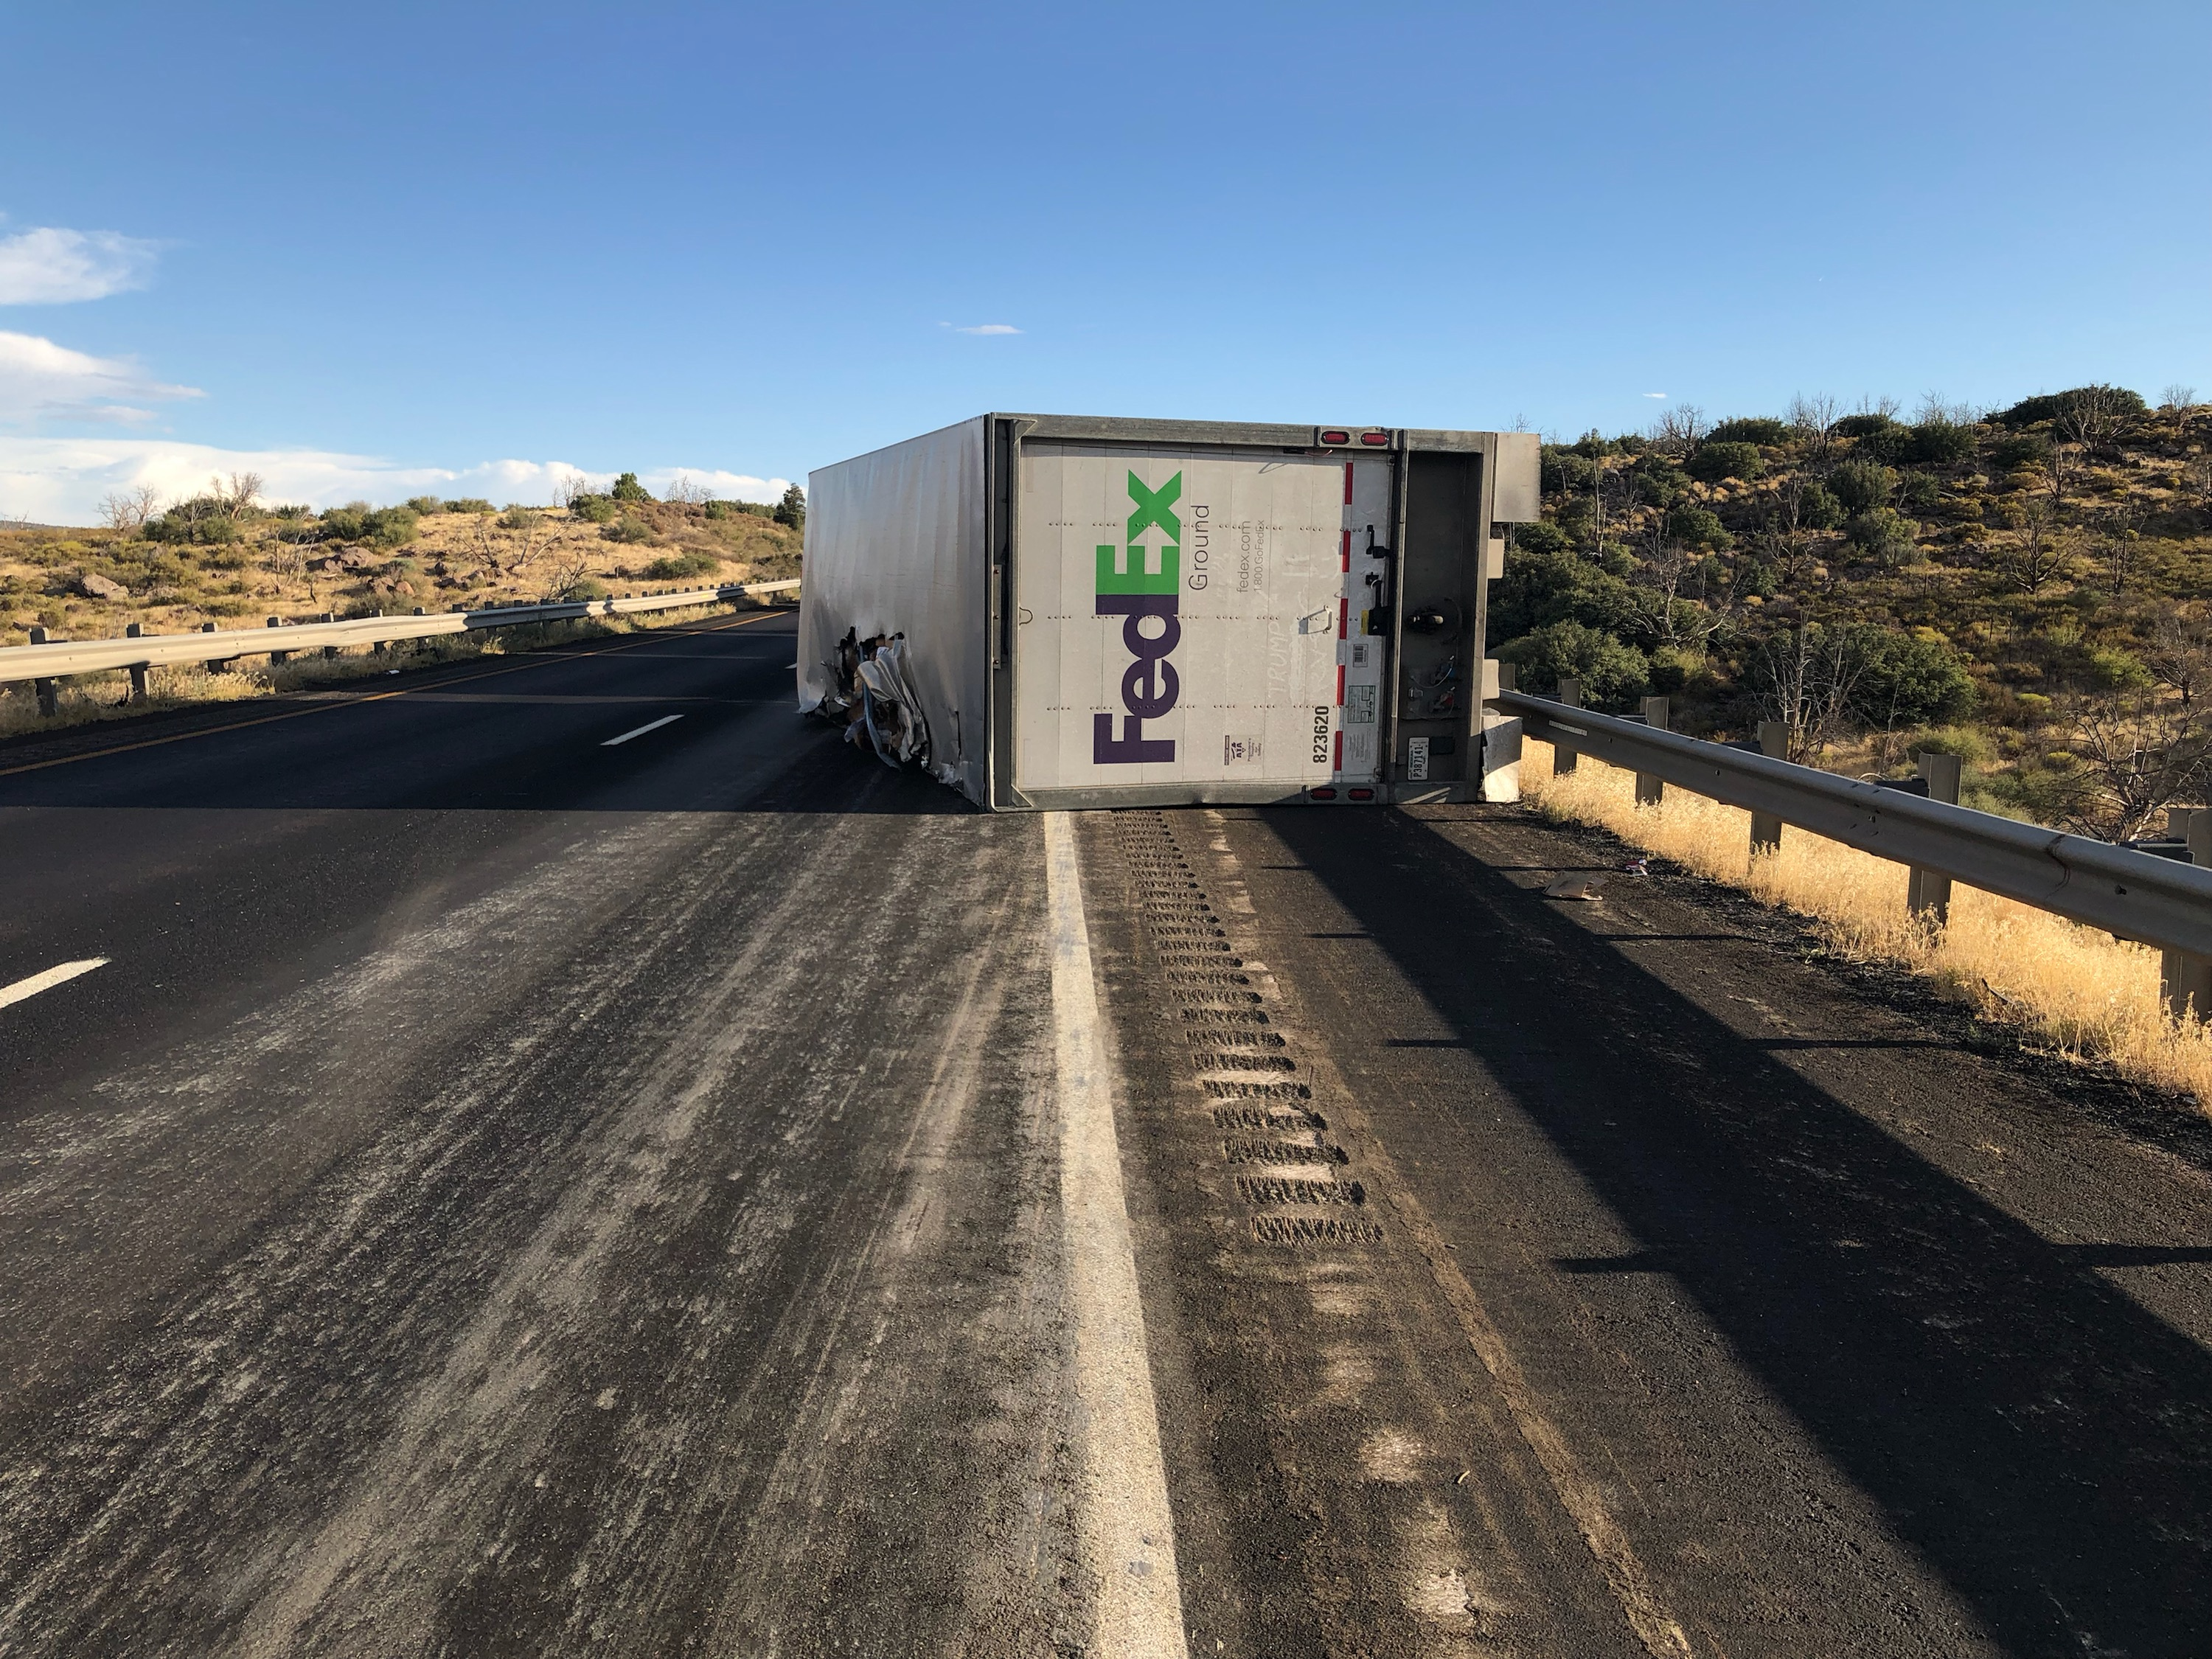 Traffic affected for 3 hours following semi crash on I-15